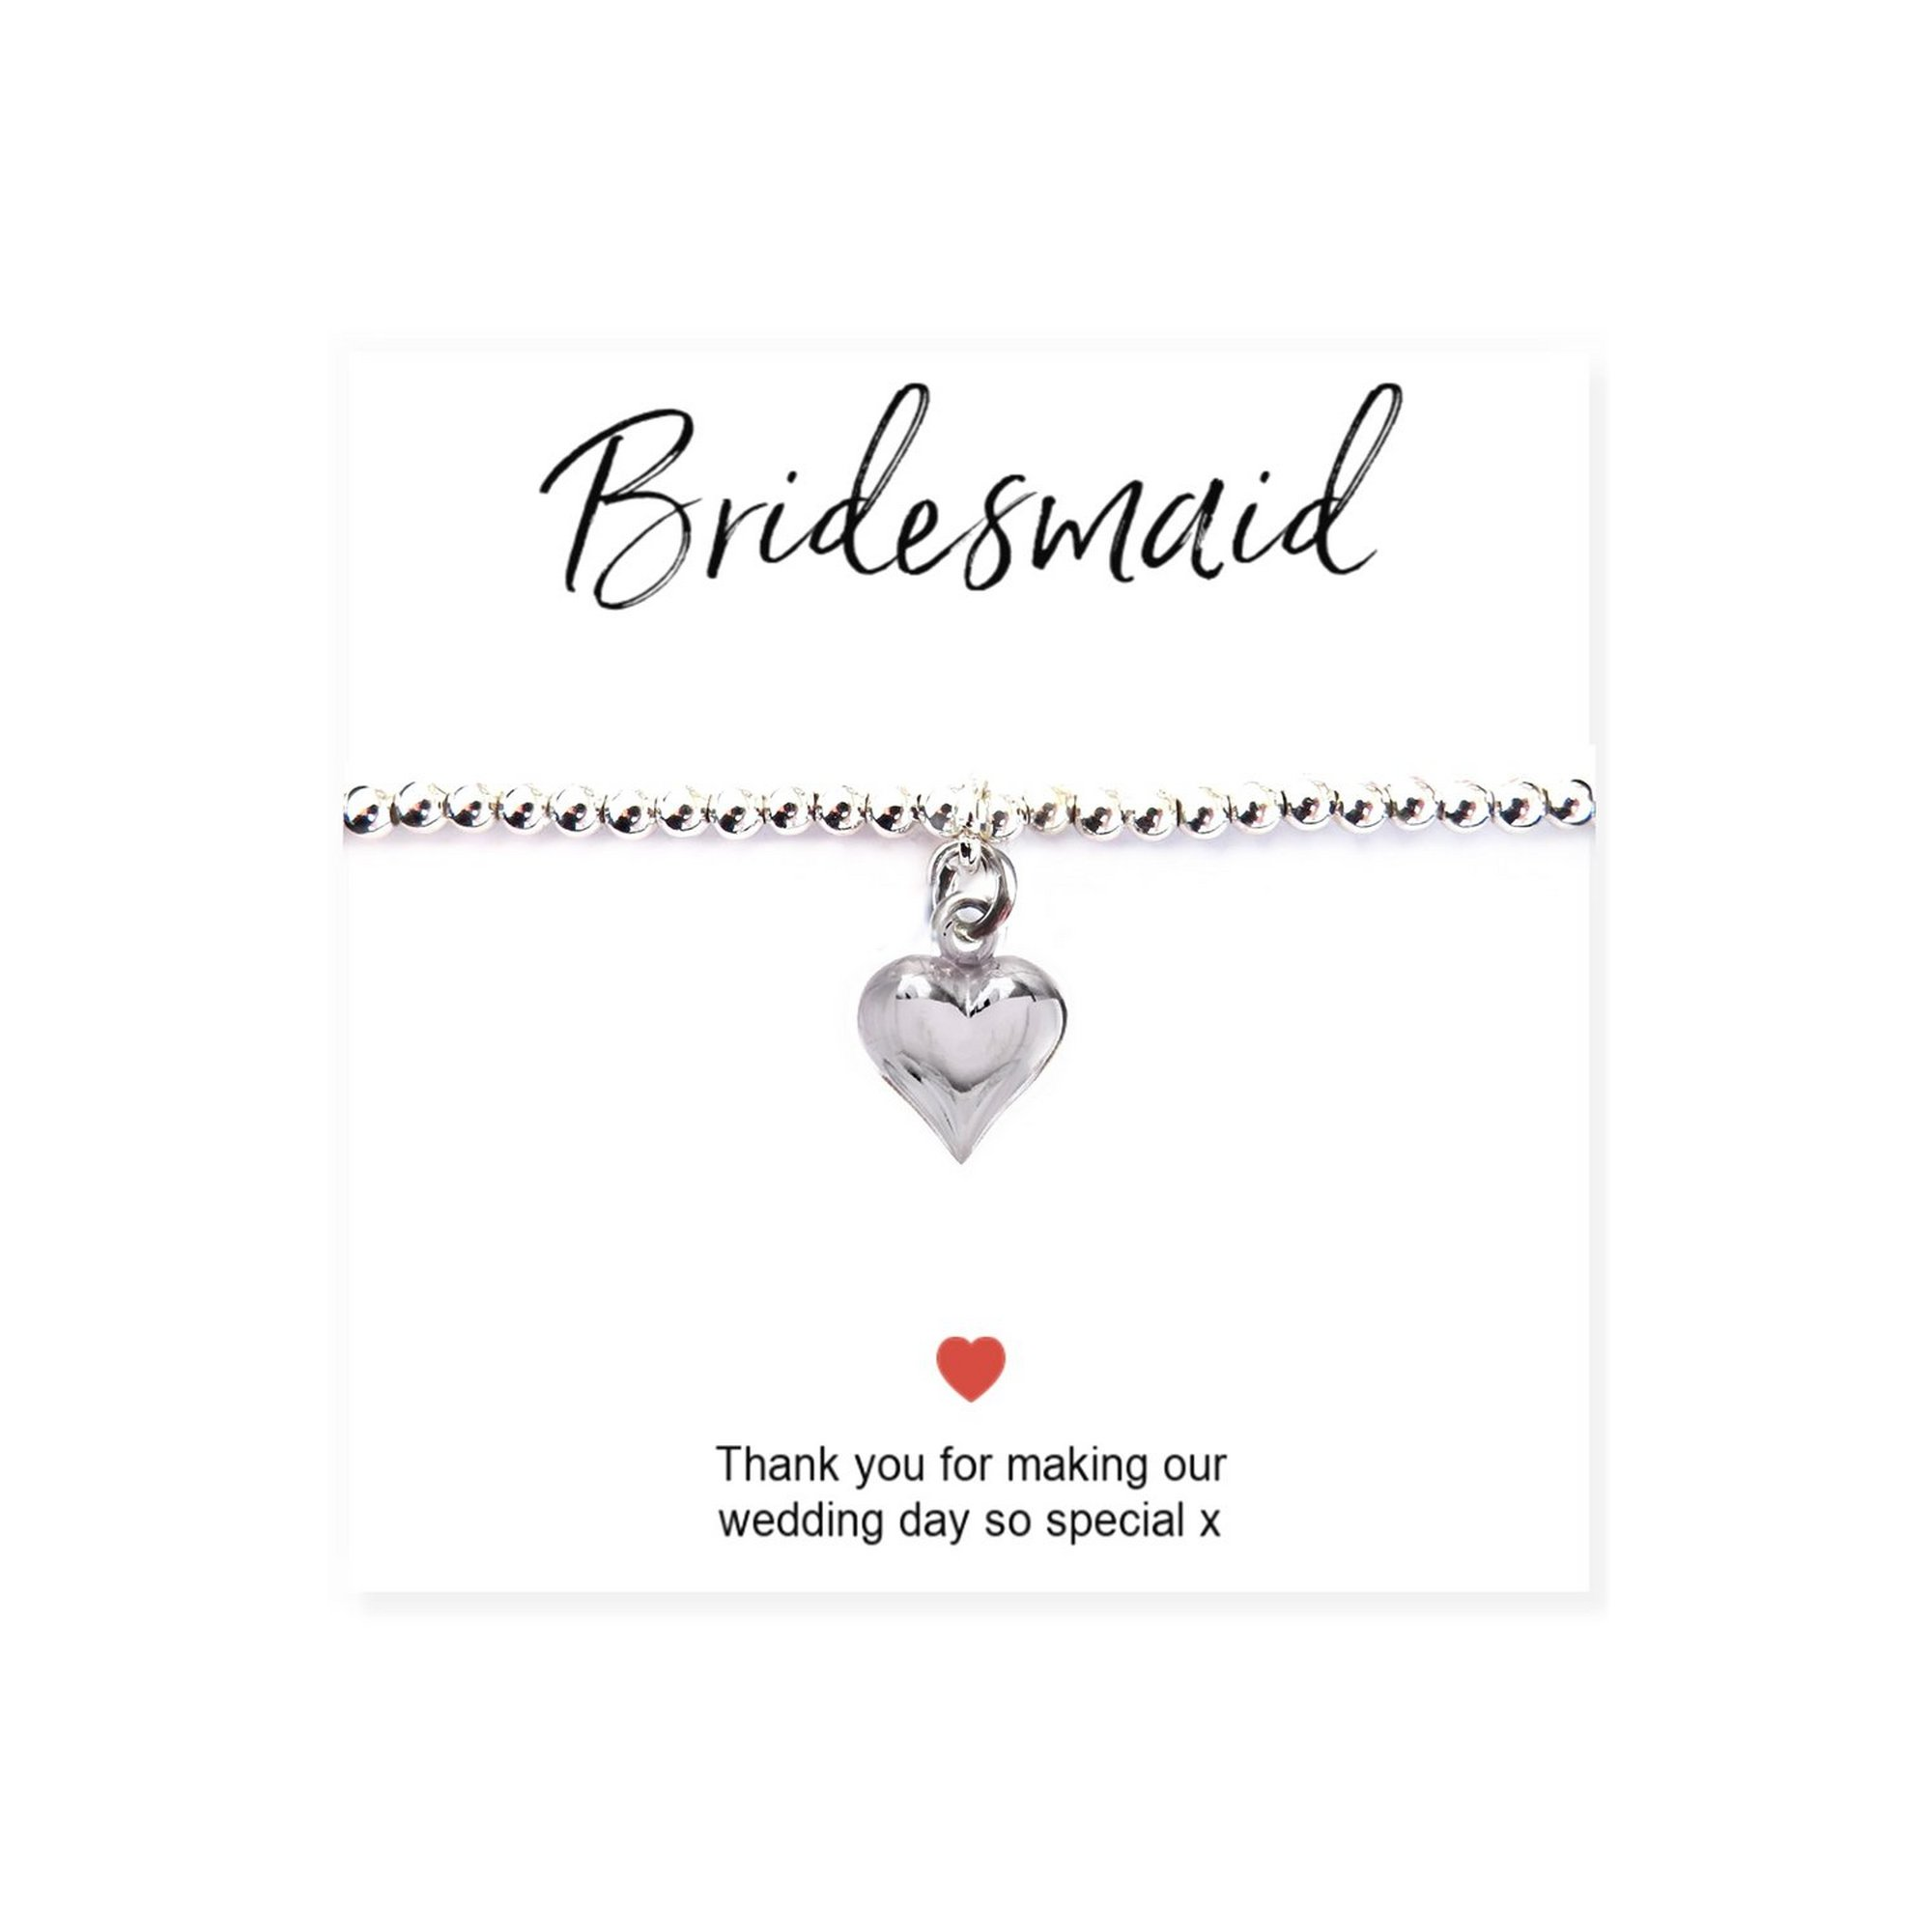 Image of Bridesmaids Heart Bracelet and Thank You Card